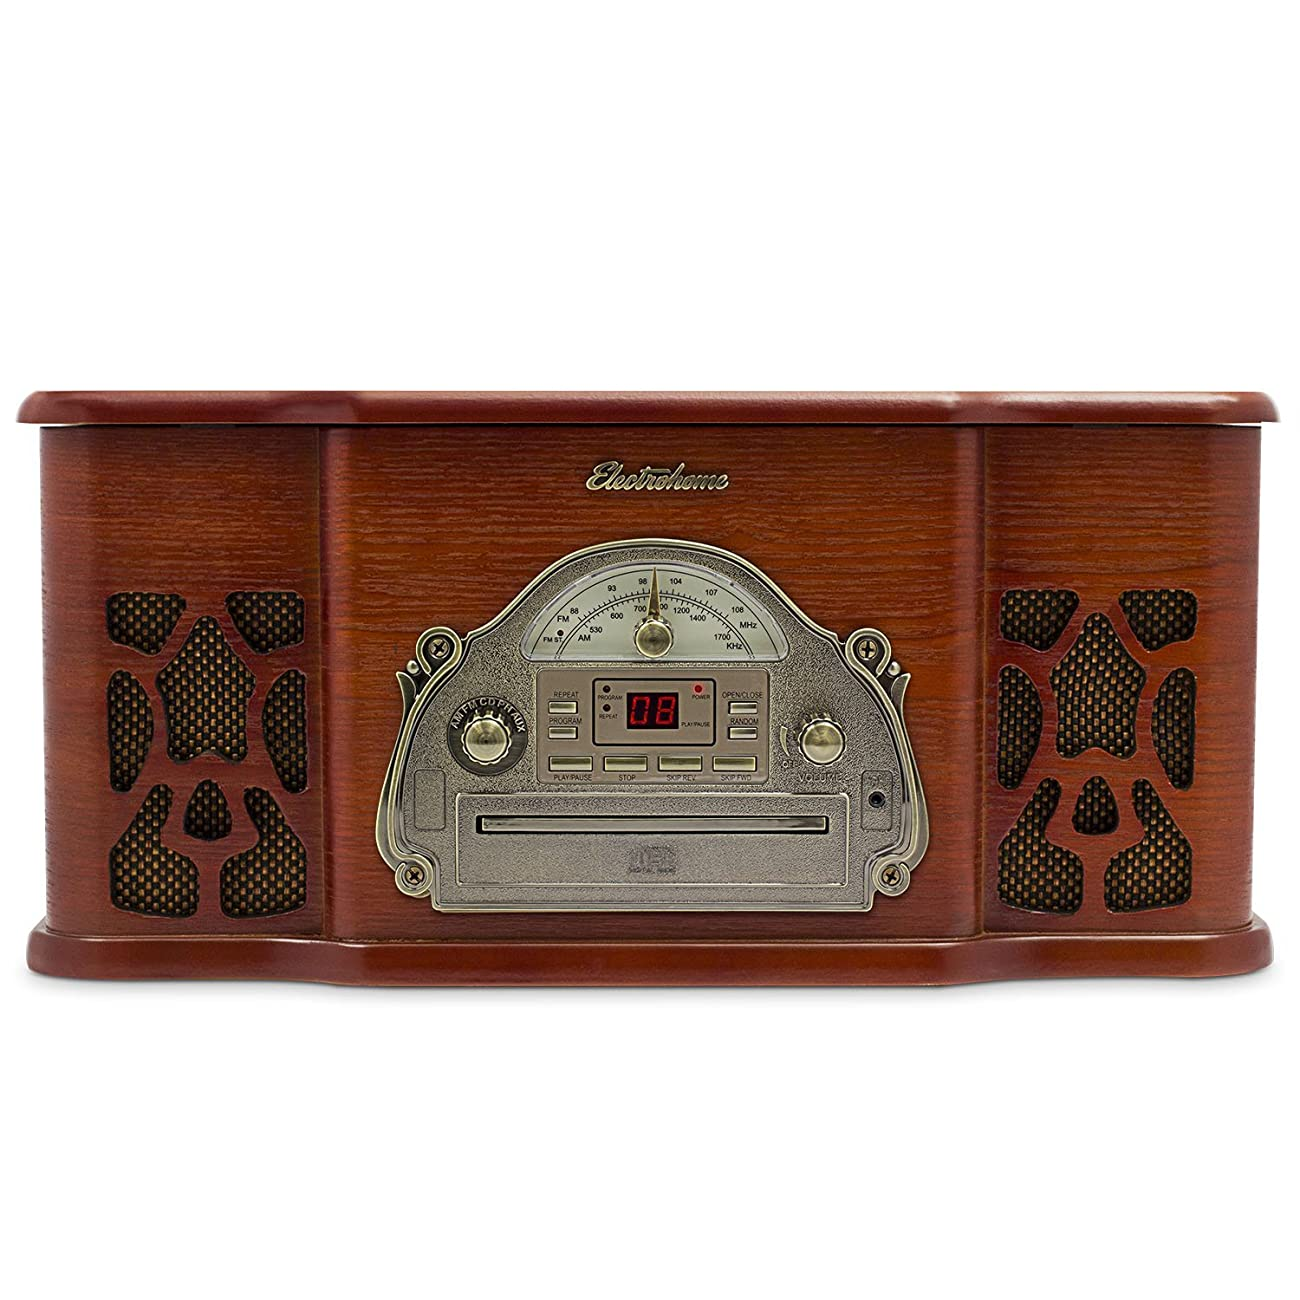 Electrohome EANOS501 Winston Vinyl Turntable 3-in-1 Wooden Stereo System 1